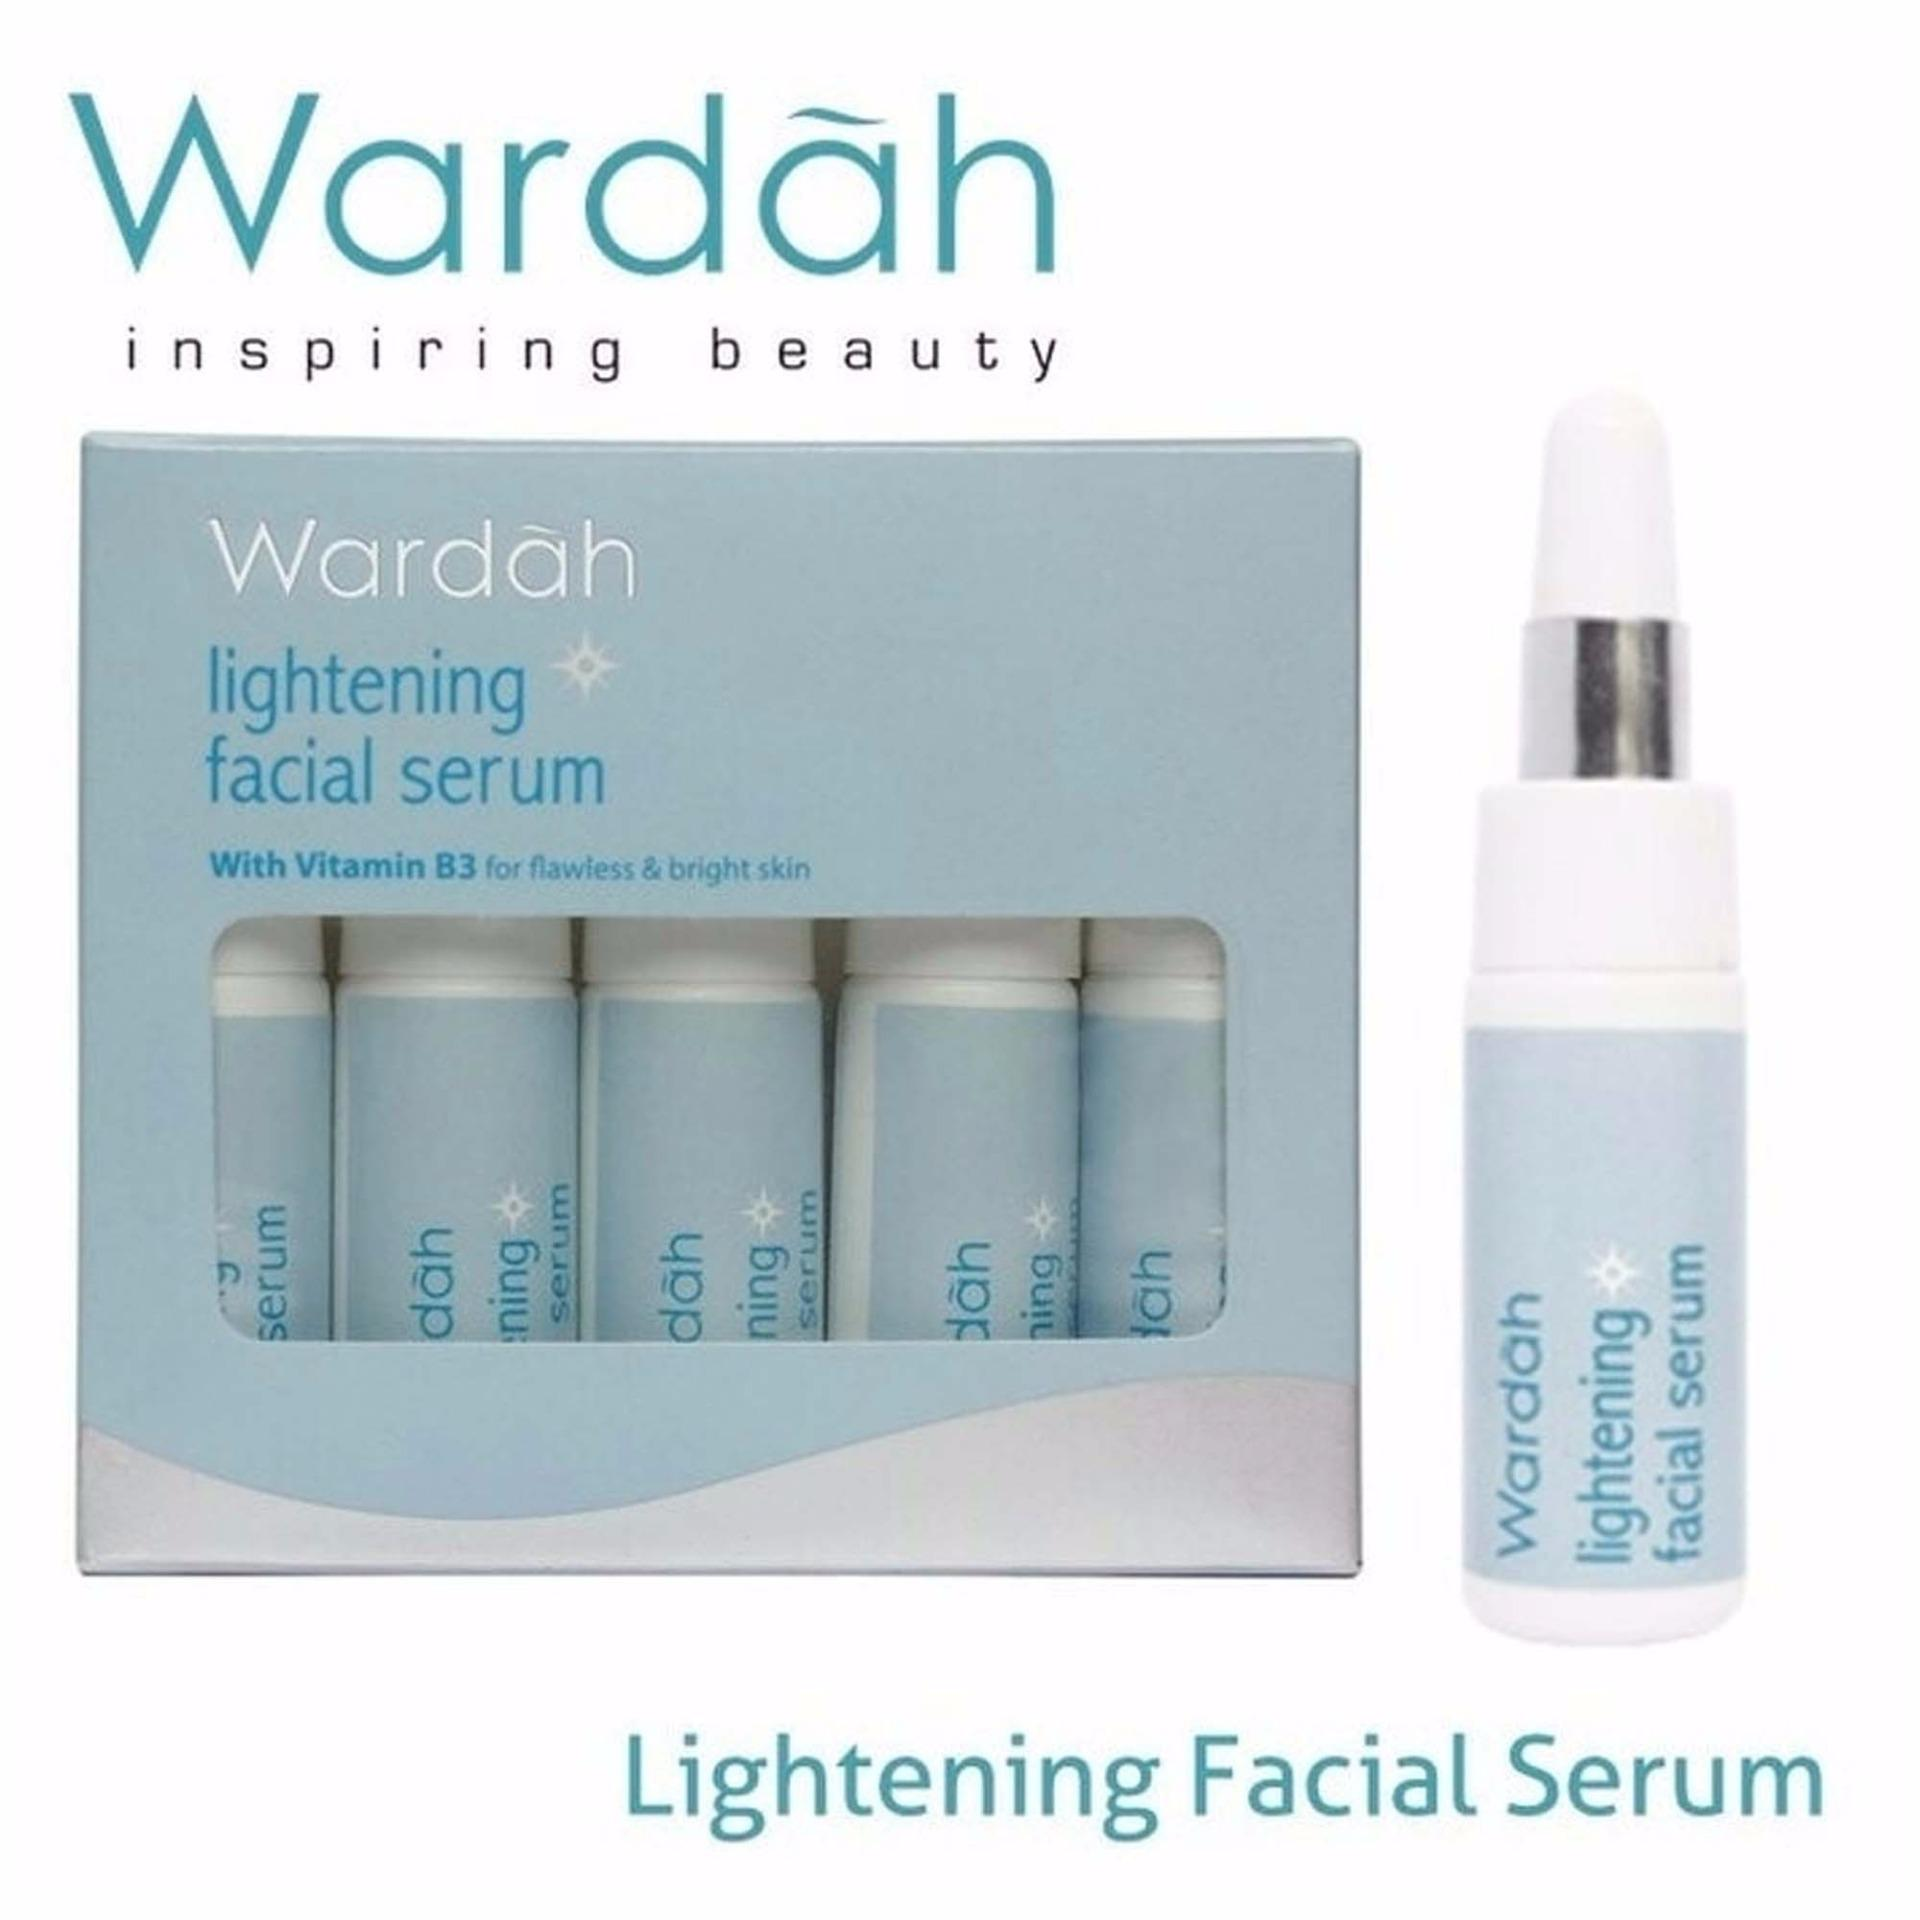 Beli Wardah Lightening F*c**l Serum 5 Botol 5 Ml Wardah Online